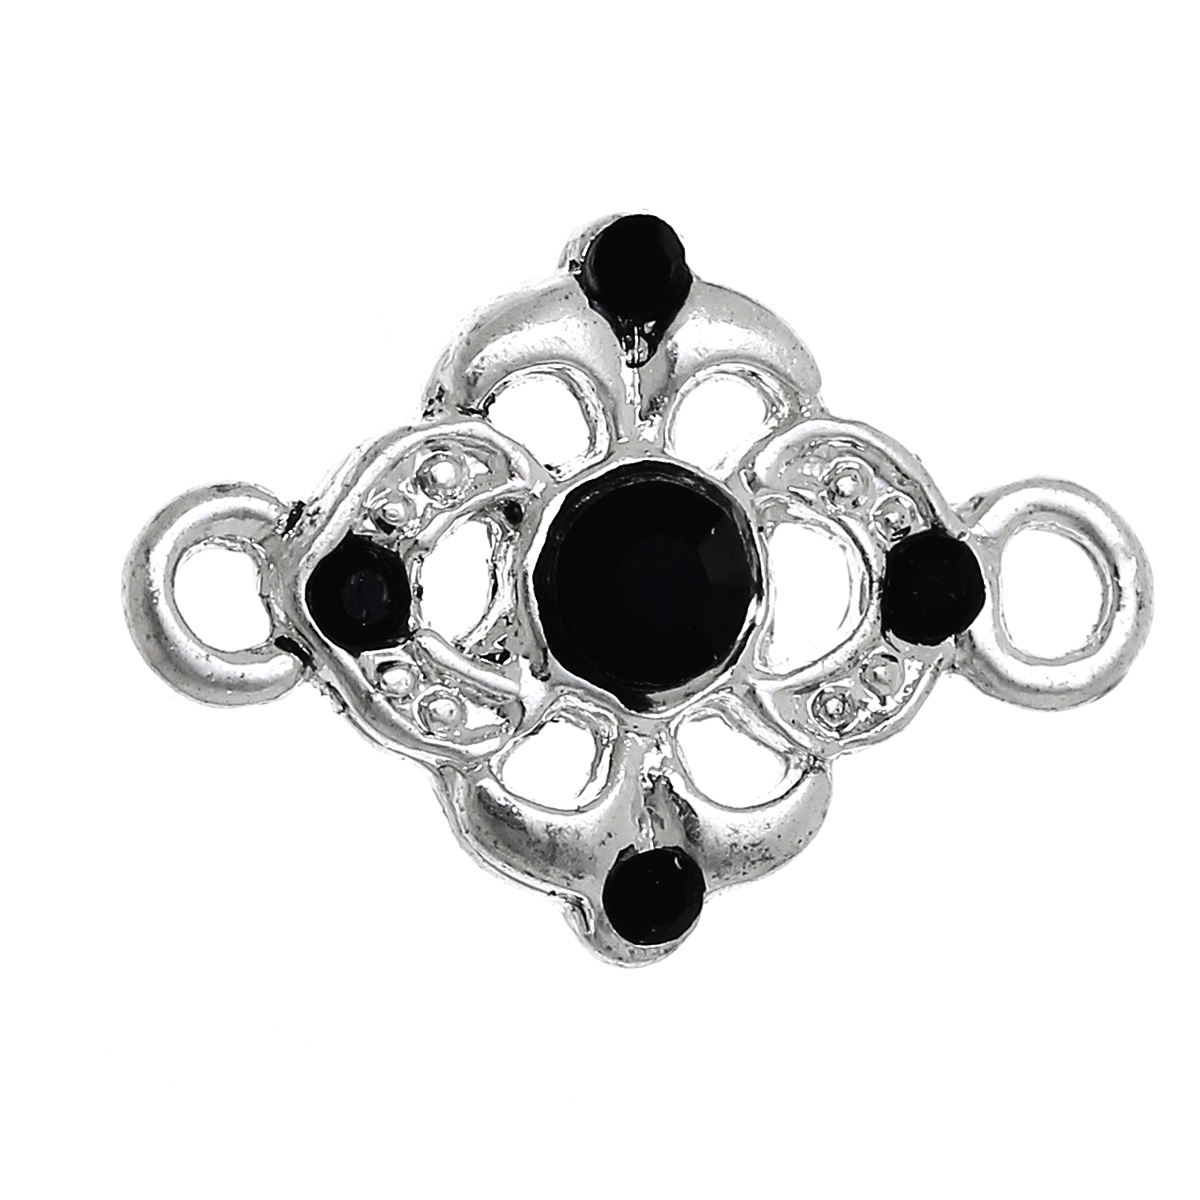 DoreenBeads Zinc alloy Connectors Findings Flower Silver color Hollow Black Rhinestone 18mm(6/8)x 13mm(4/8),2 Pieces 2017 newDoreenBeads Zinc alloy Connectors Findings Flower Silver color Hollow Black Rhinestone 18mm(6/8)x 13mm(4/8),2 Pieces 2017 new